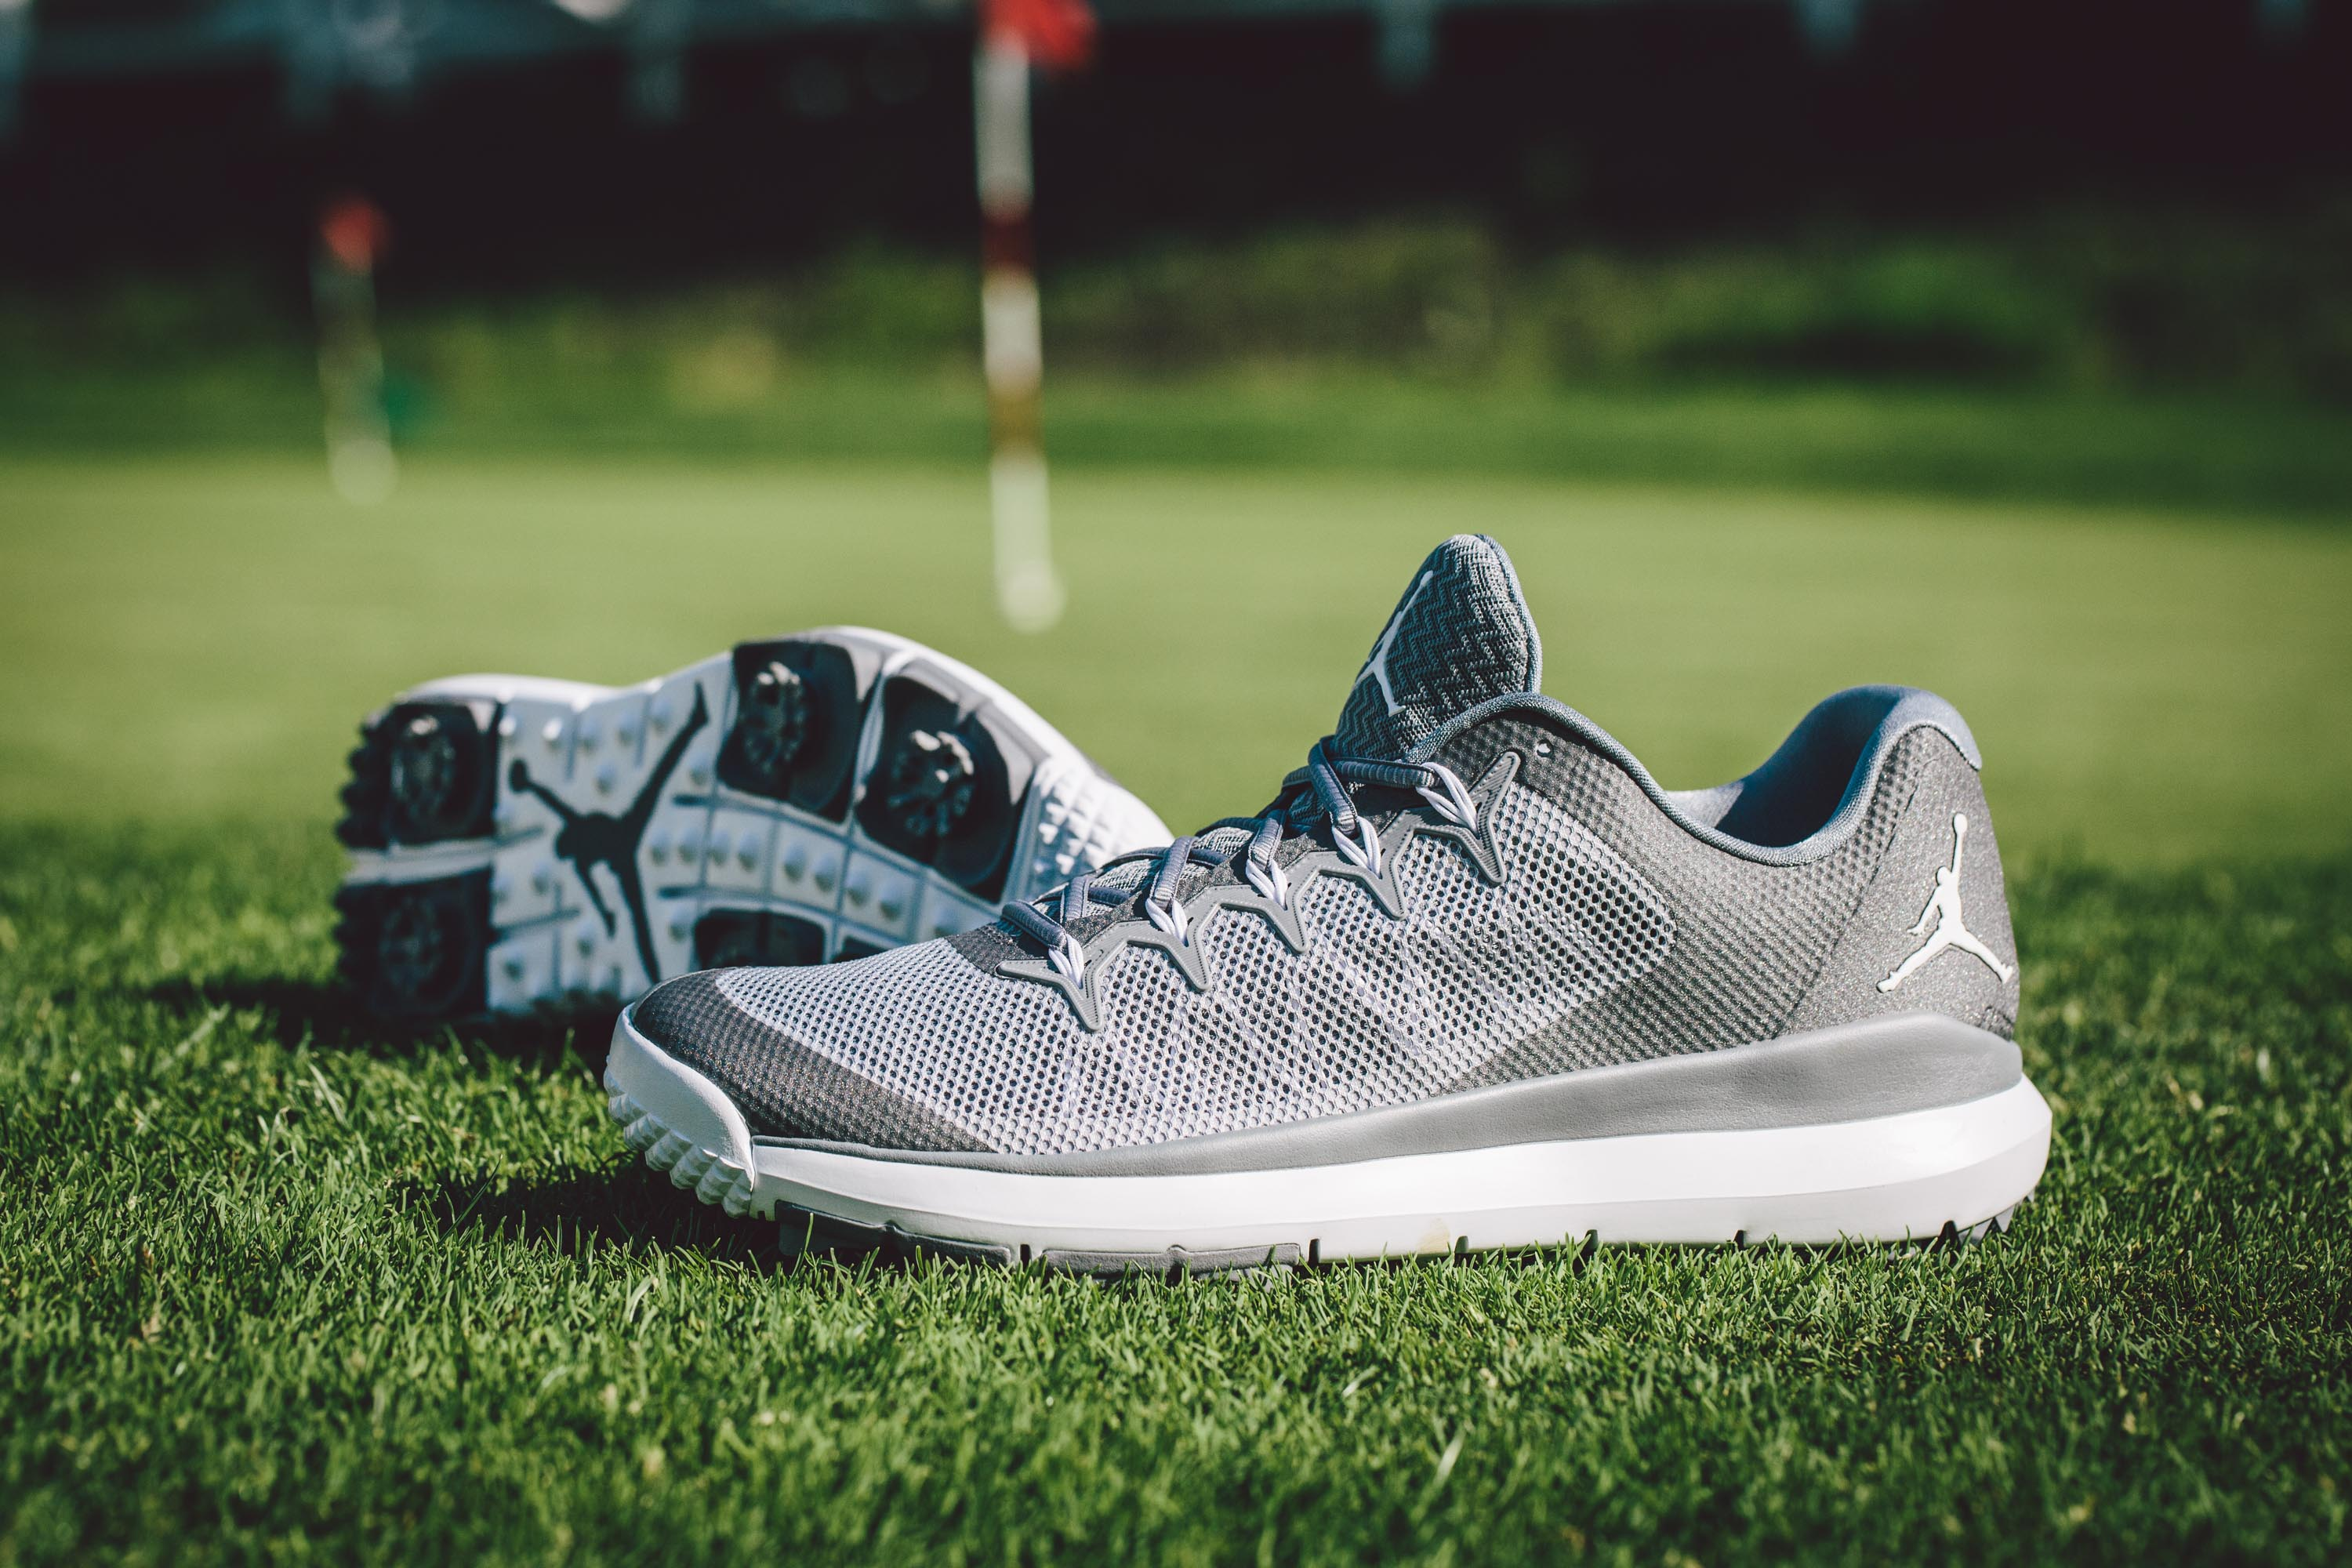 Jordan_Flight_Runner_Golf_2_original.jpg?1432872222